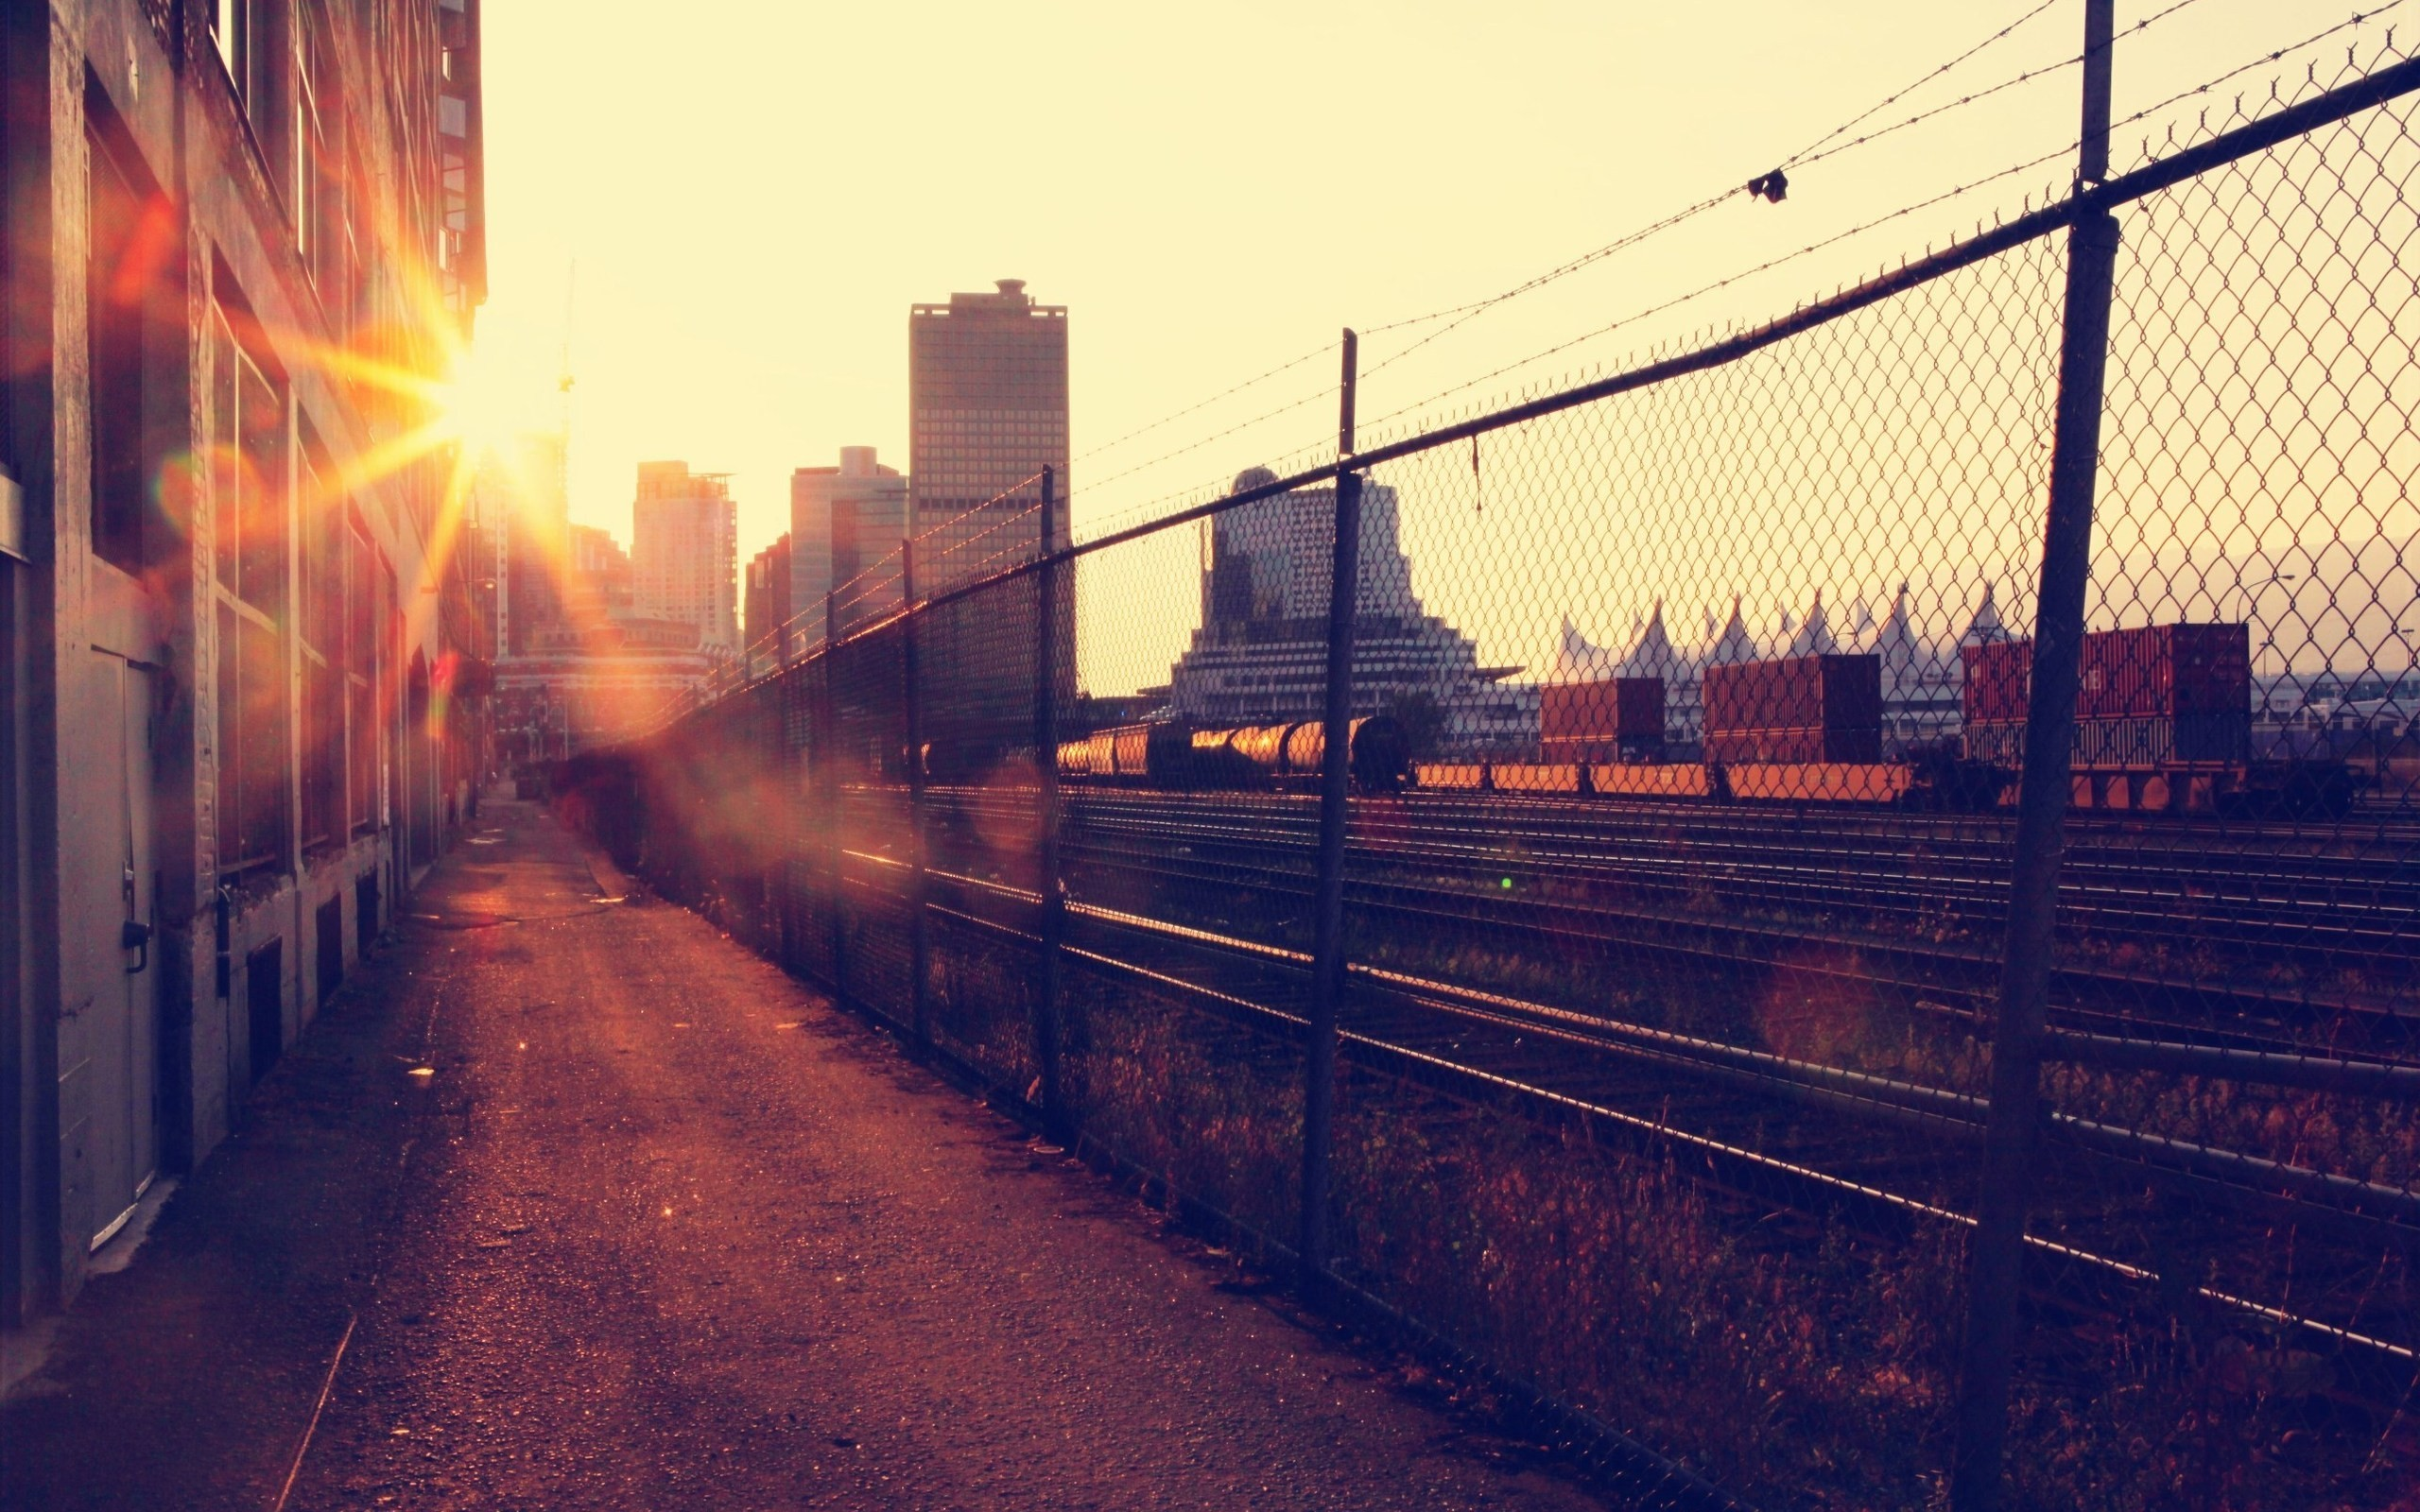 cityscapes vancouver sunlight railroad HD Wallpaper